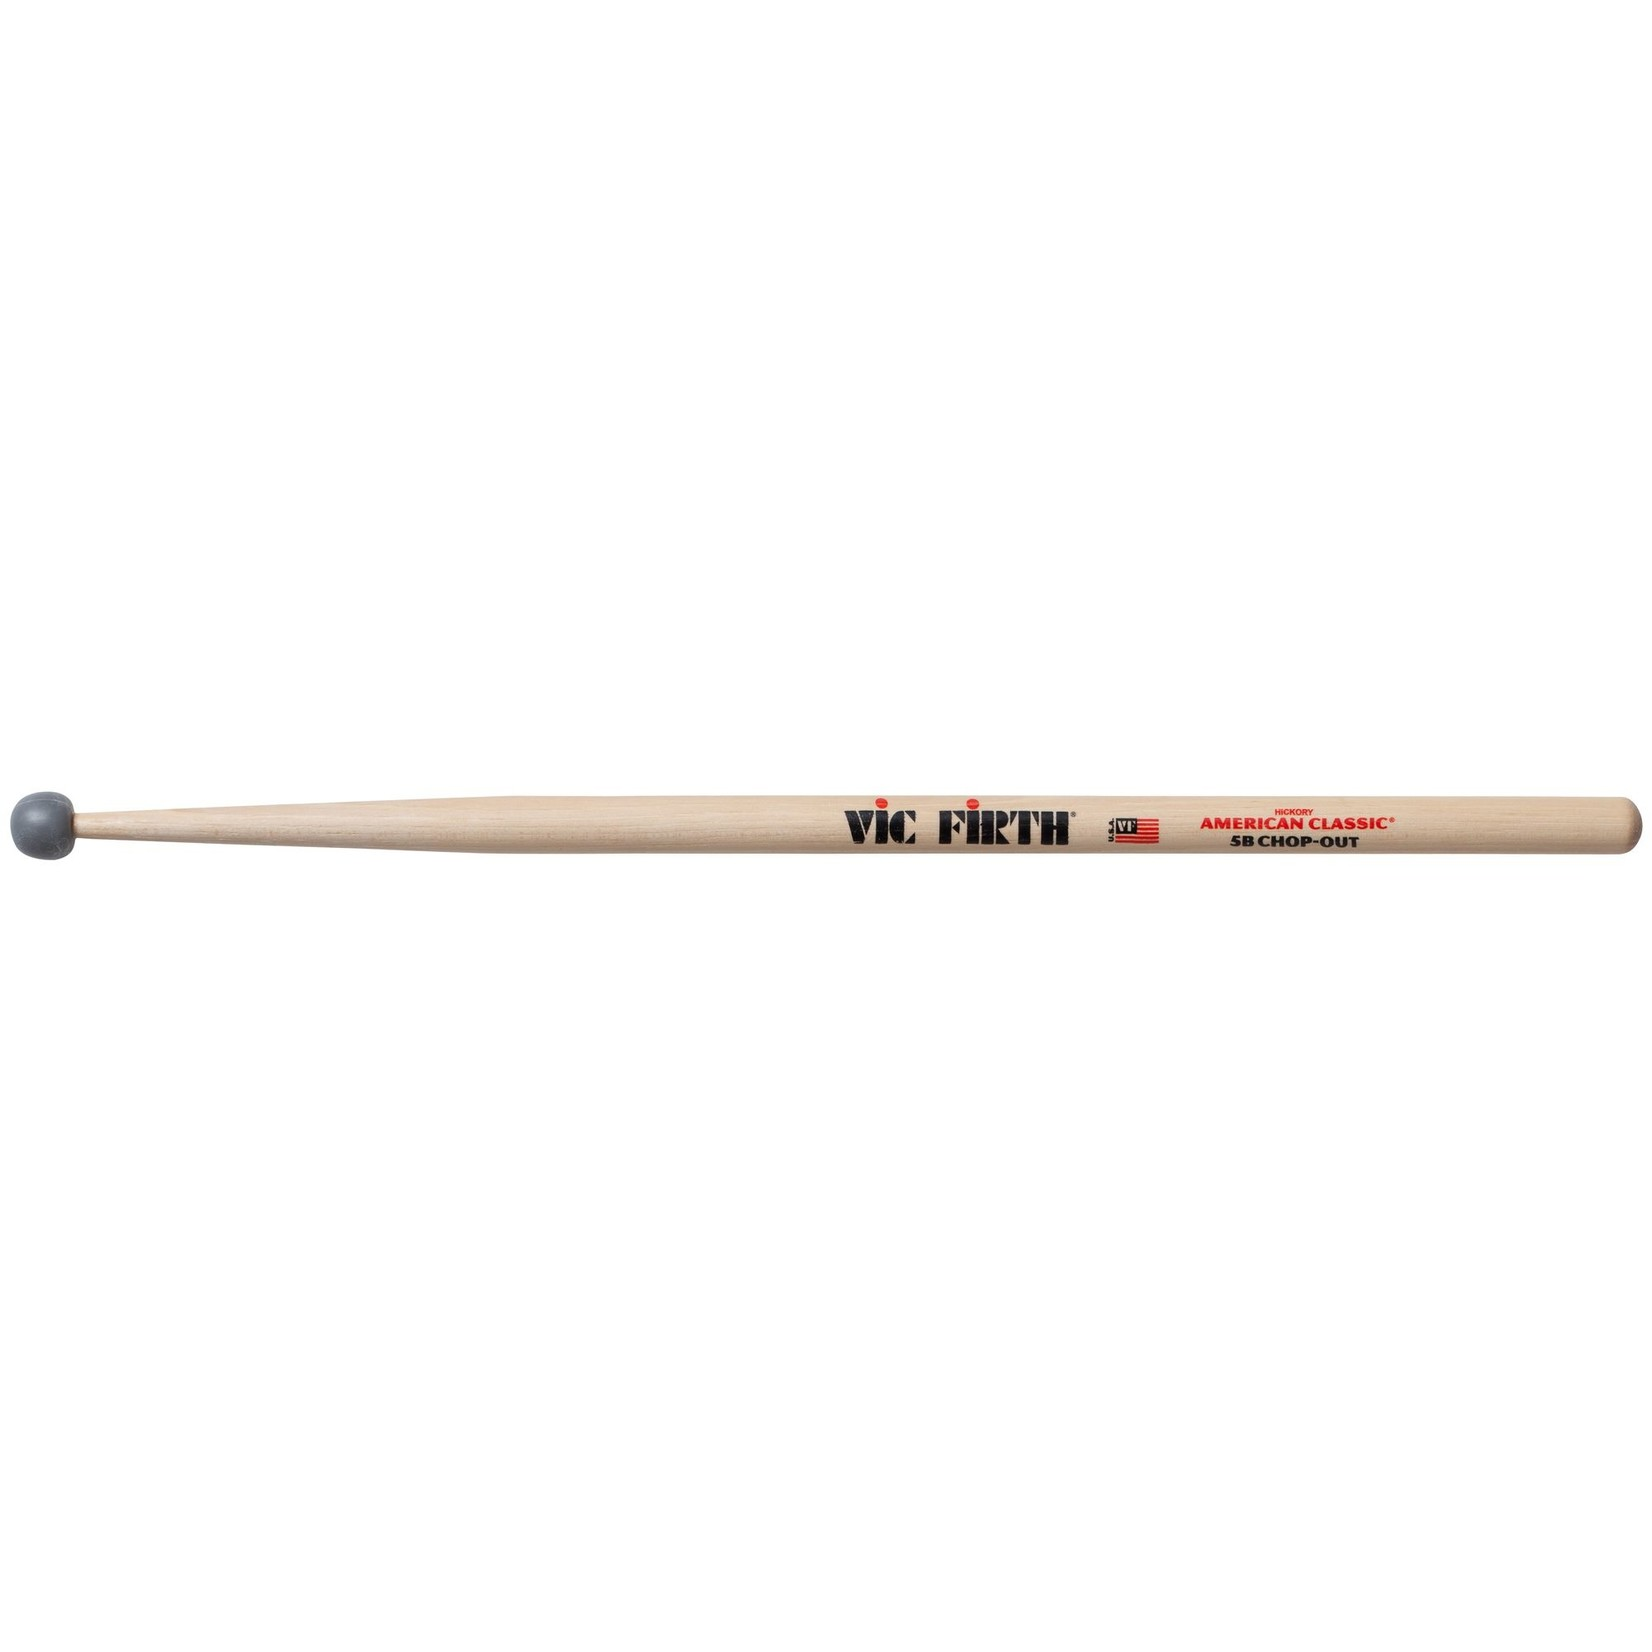 Vic Firth Vic Firth American Classic® 5B Chop-Out Practice Stick